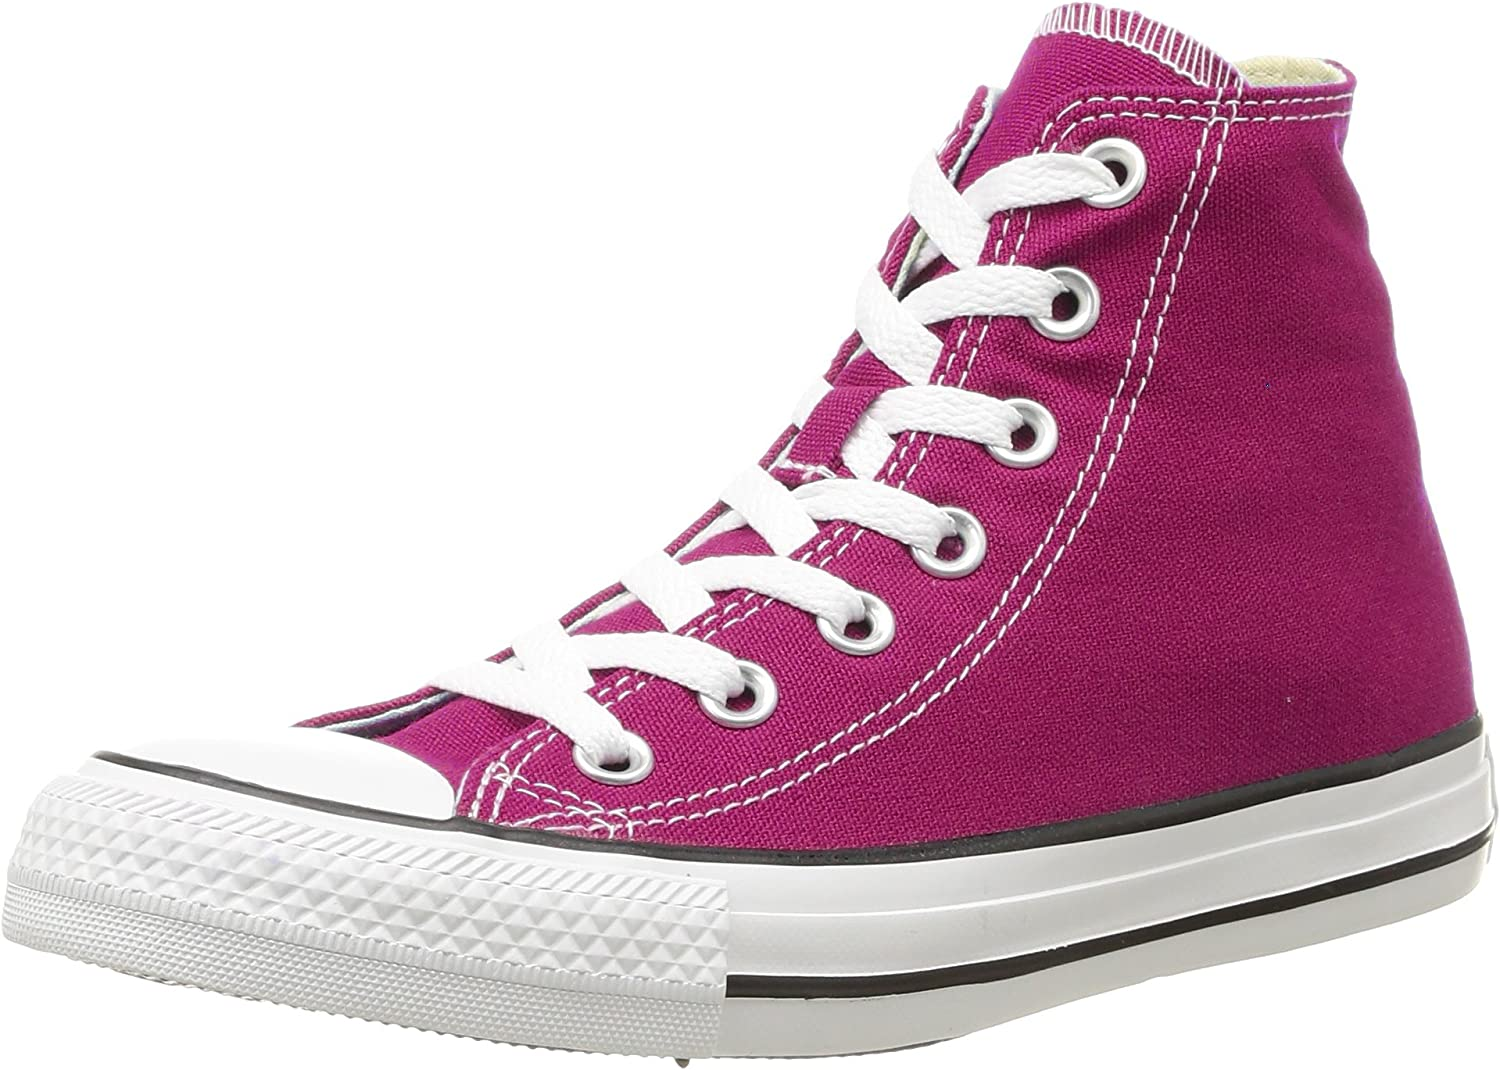 Converse Chuck Taylor Seasonal Pink Sapphire High Top